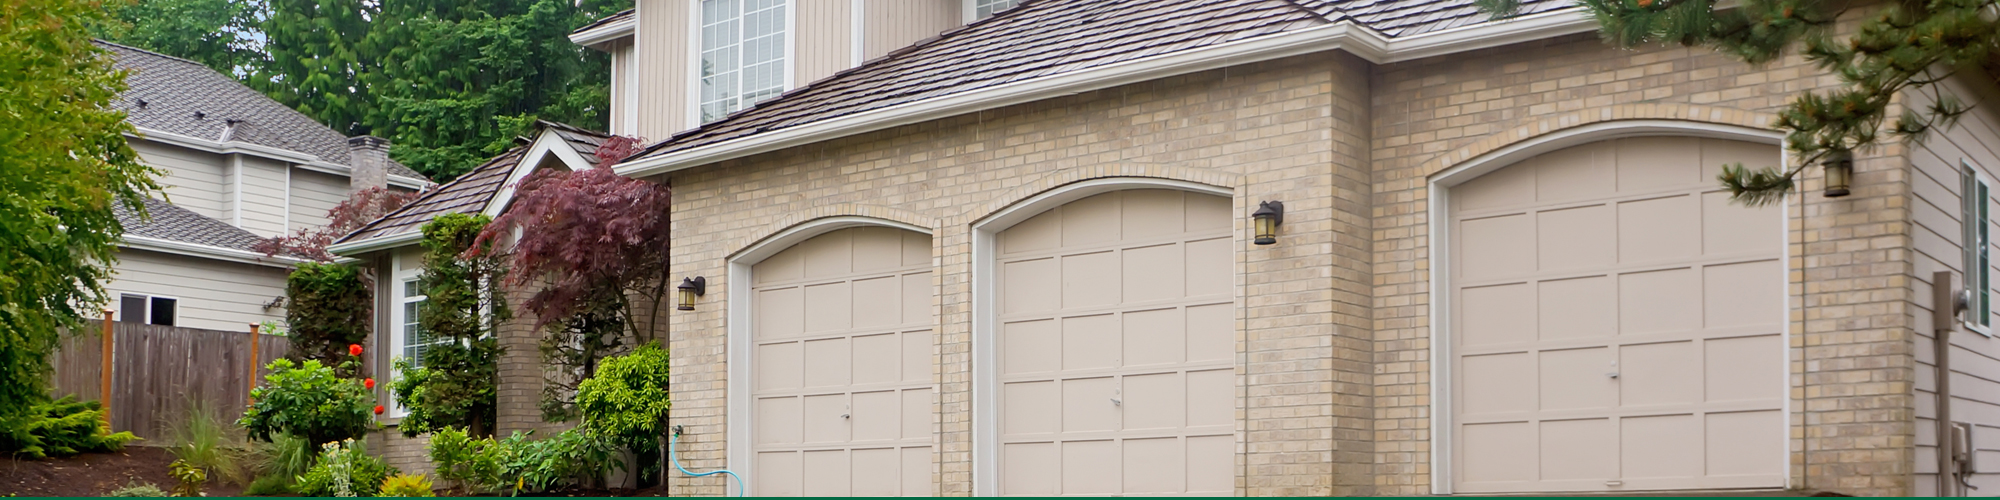 Garage door repair in houston tx affordable fast services rubansaba